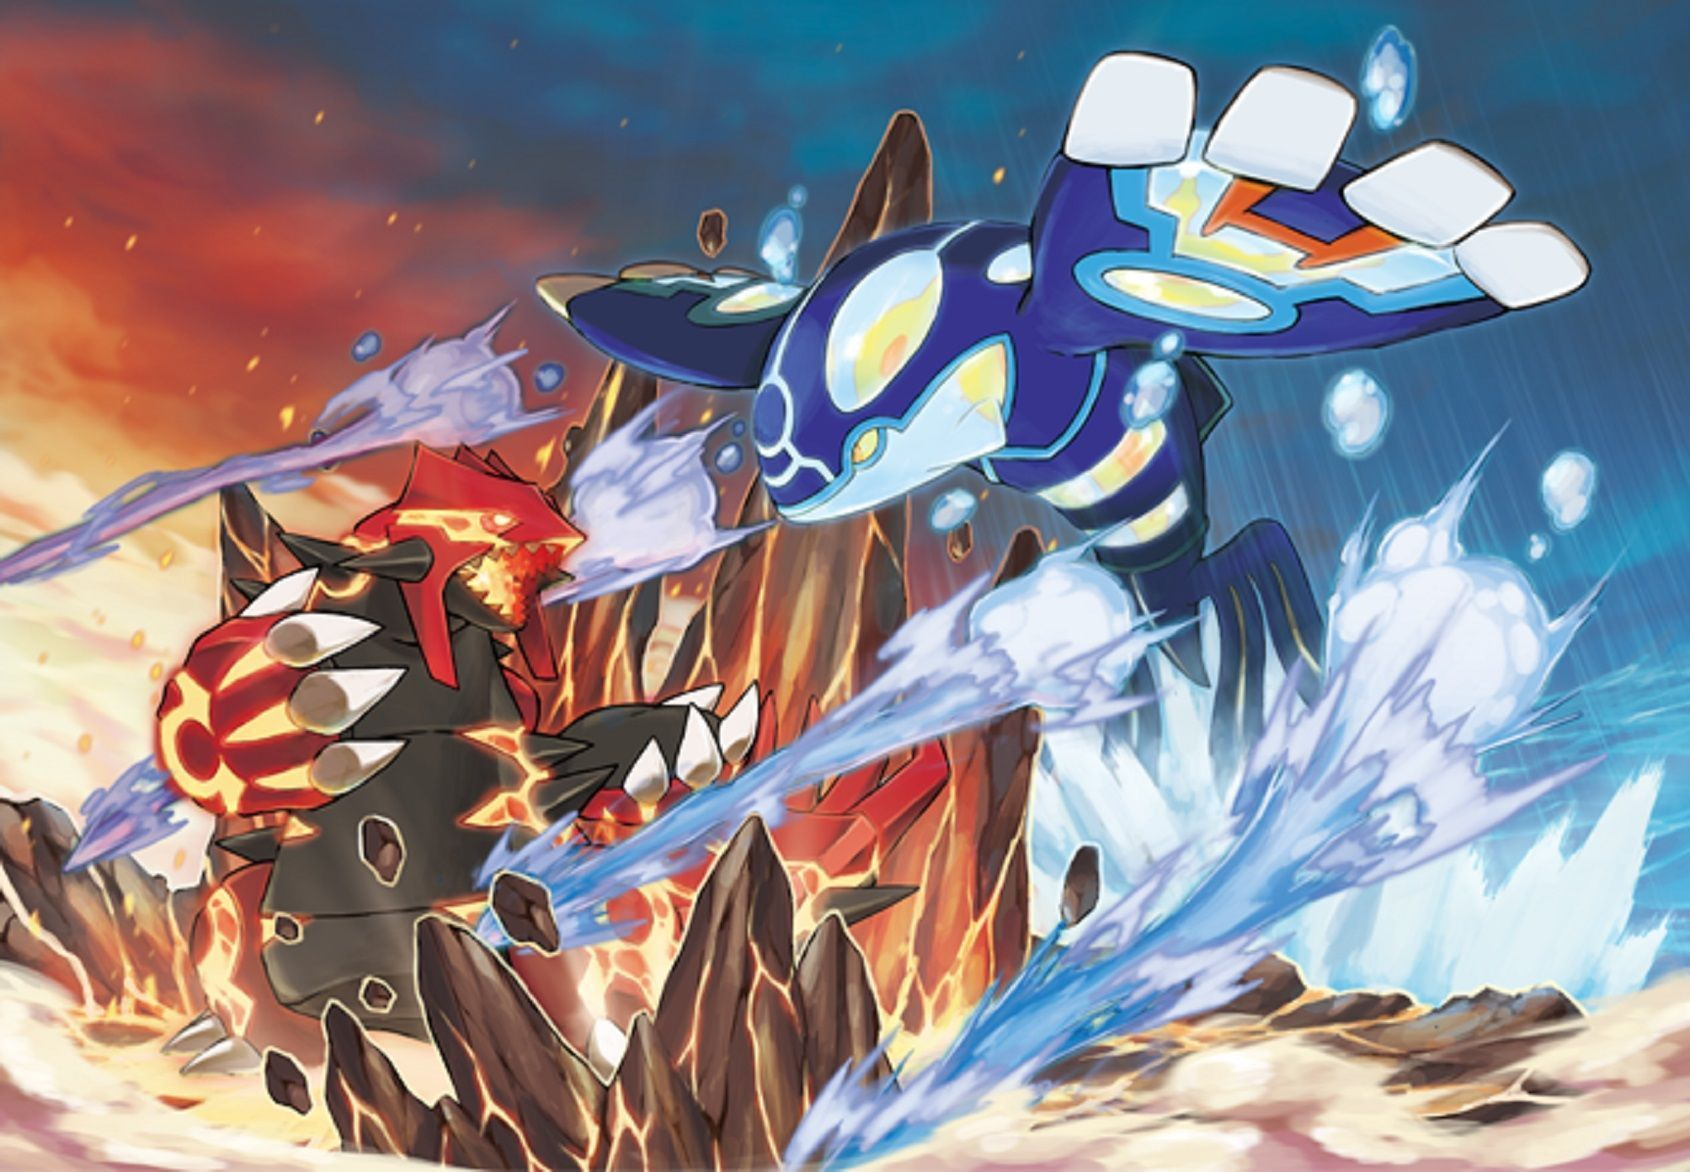 Primal Kyogre Wallpaper kyogre wallpapers (55 wallpapers) – wallpapers and backgrounds